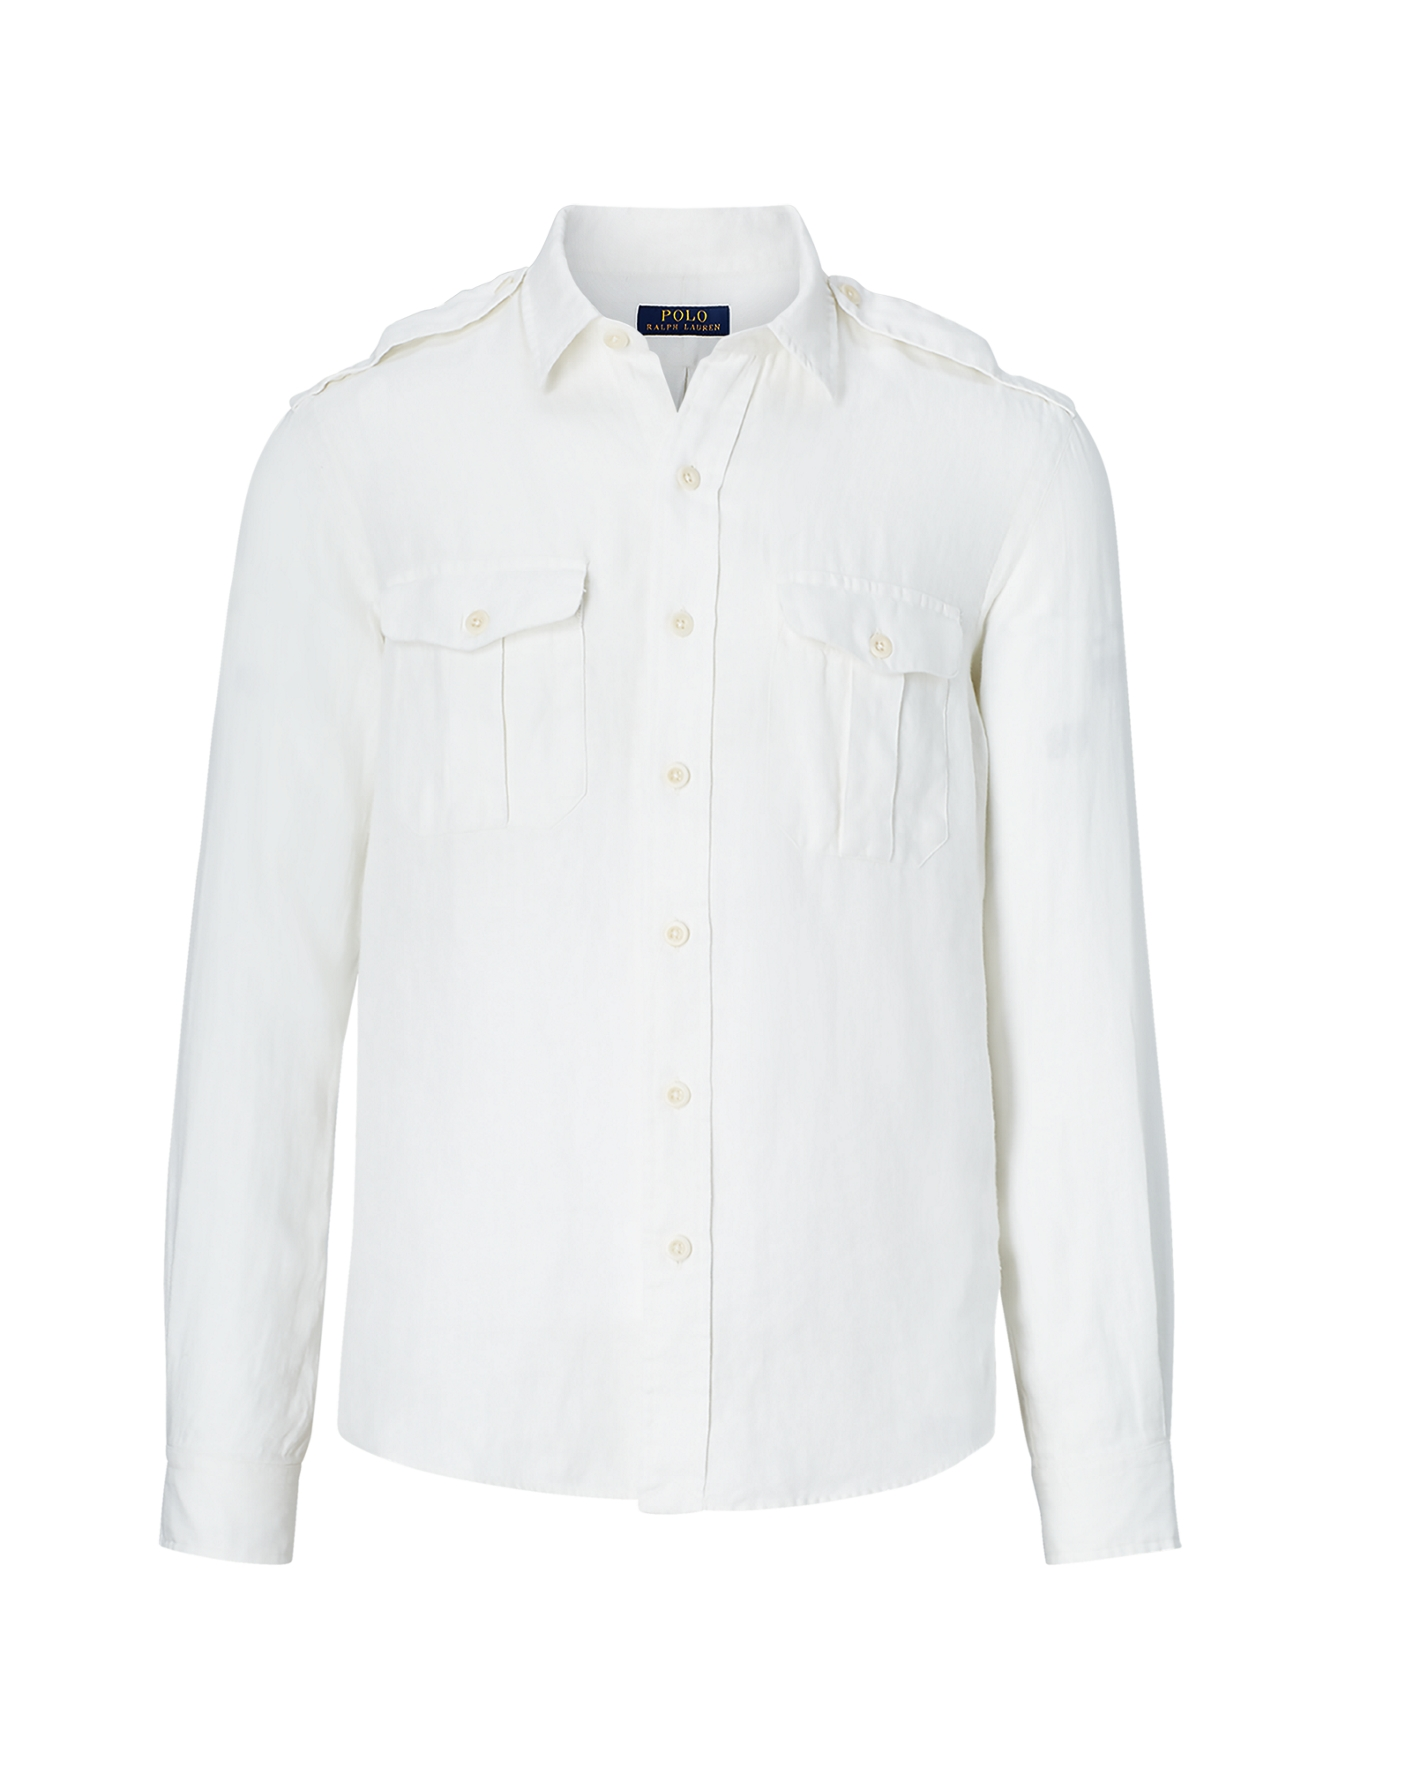 Men's Casual Shirts on Sale - Up to 50% Off | Ralph Lauren